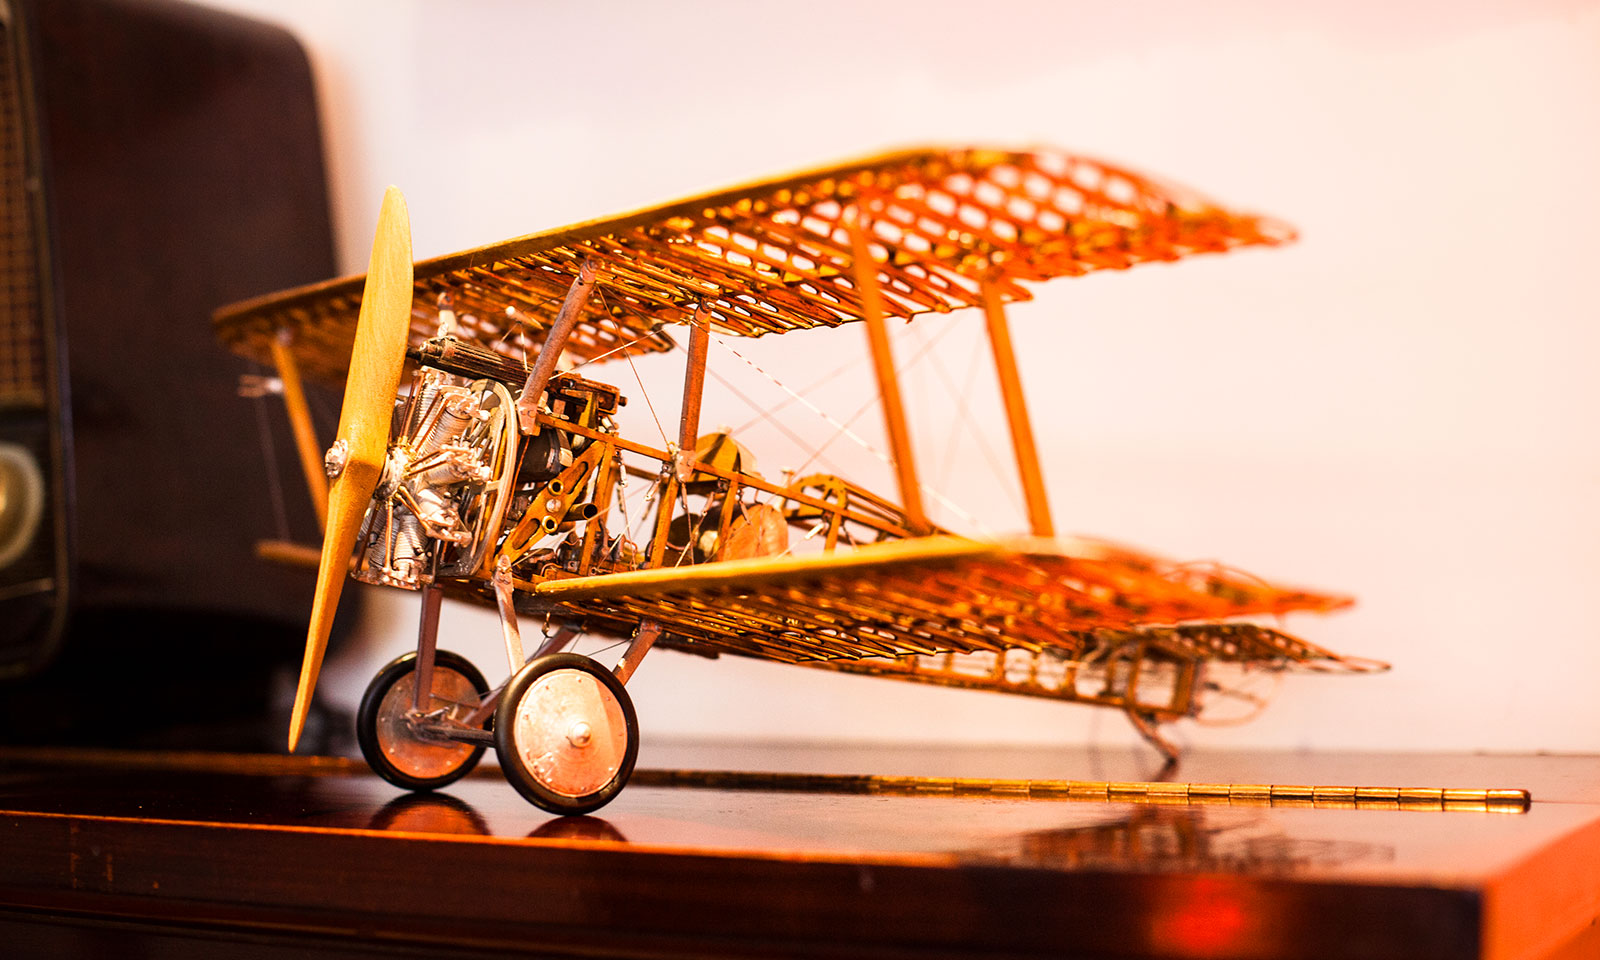 A model airplane on our piano. We love the little touches.